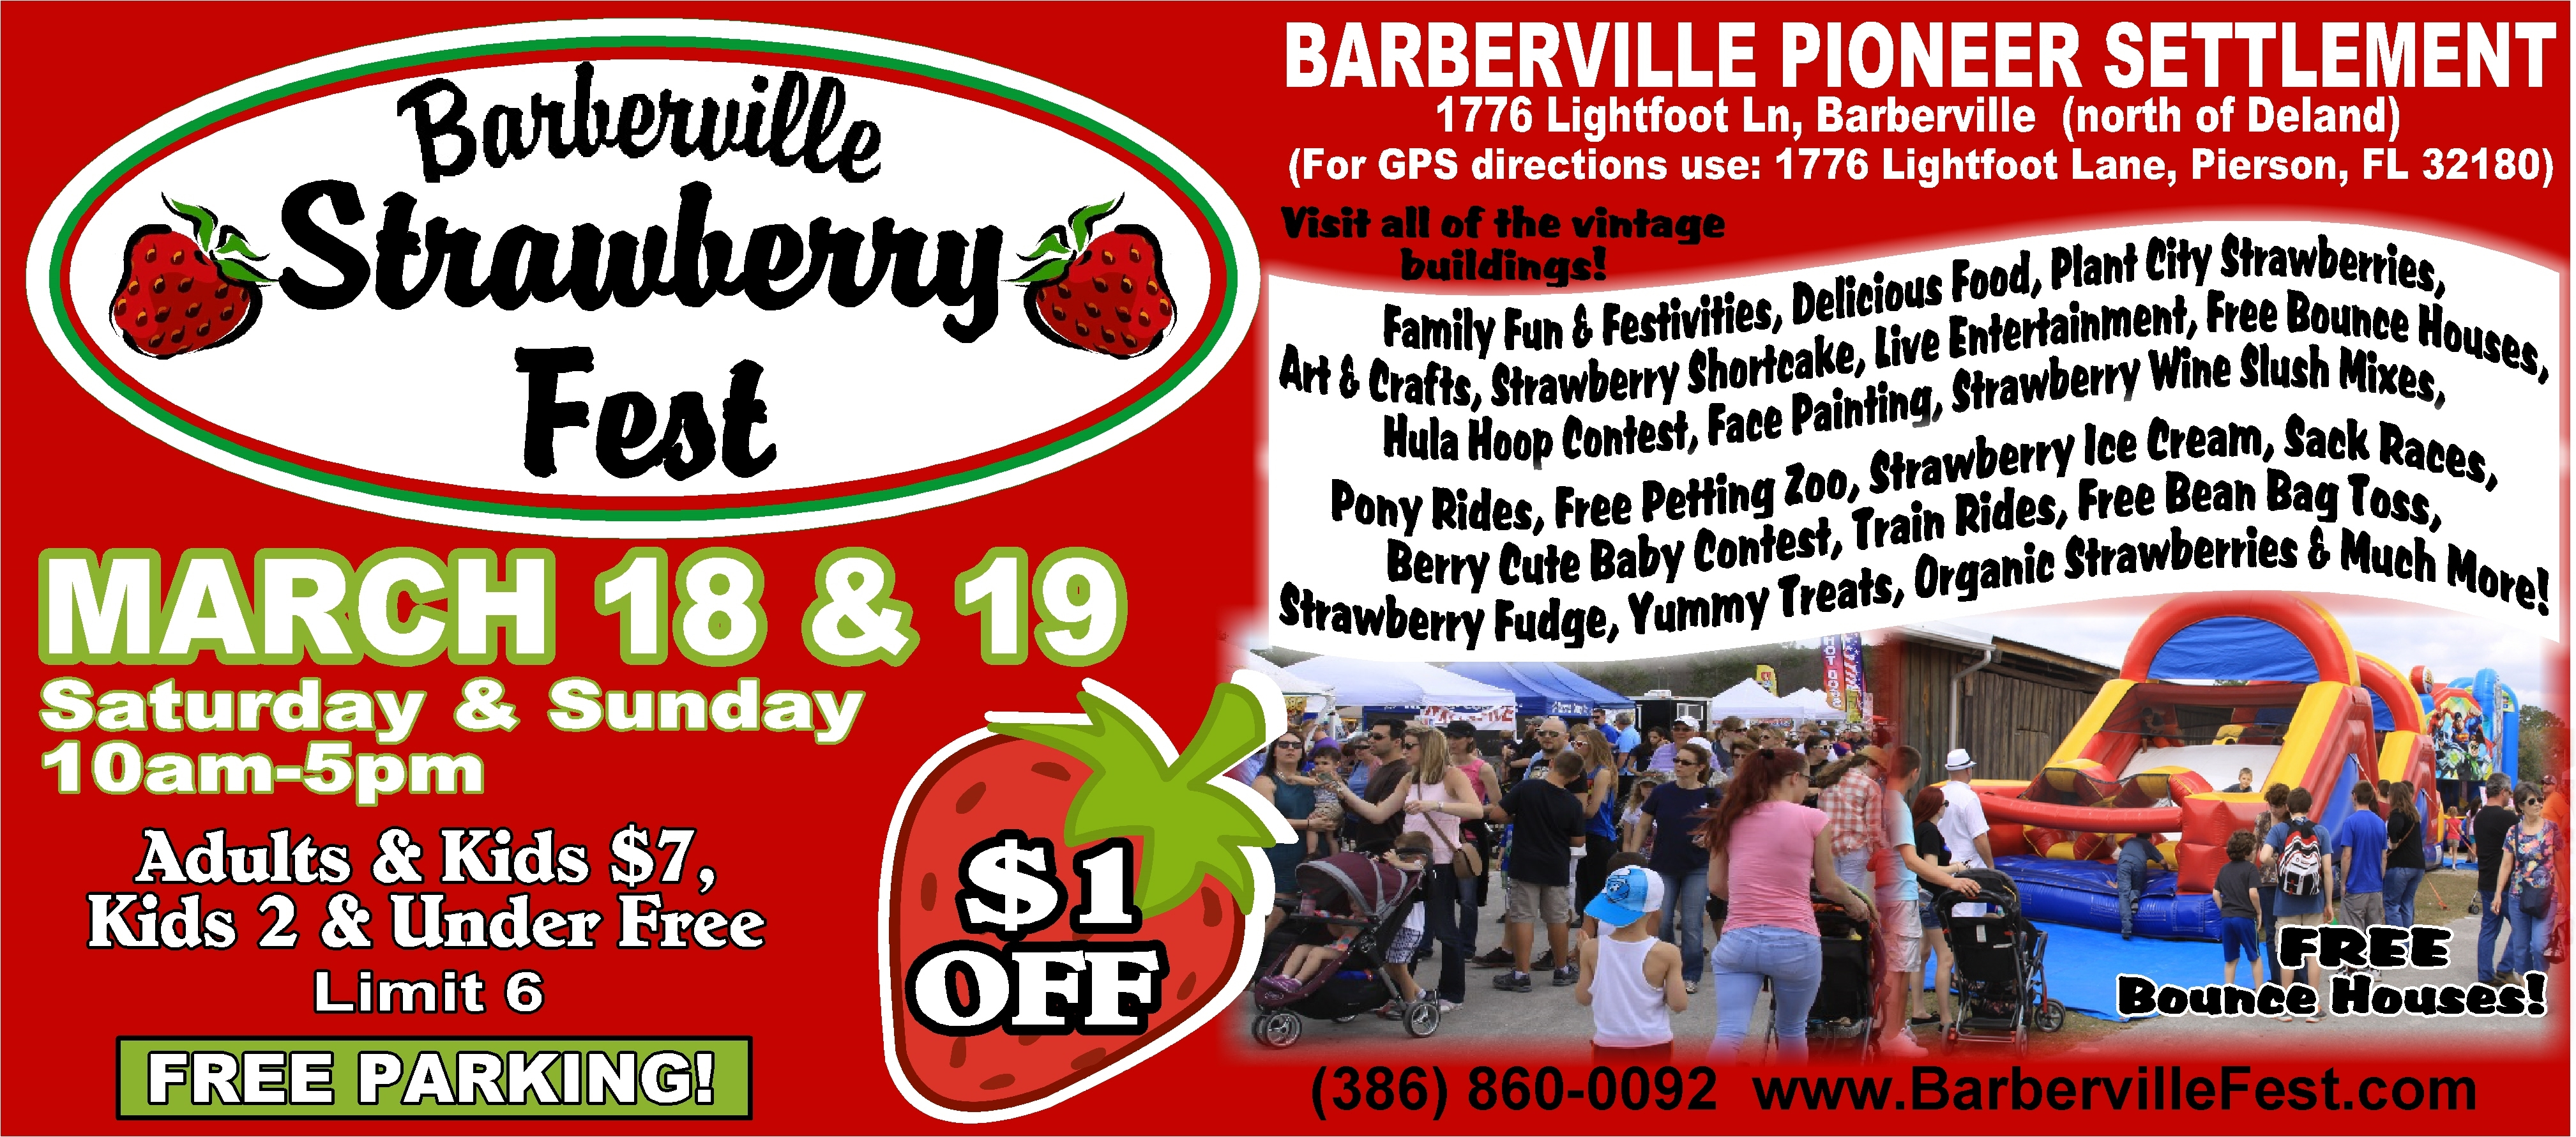 Barberville Strawberry Fest - March 18 & 19